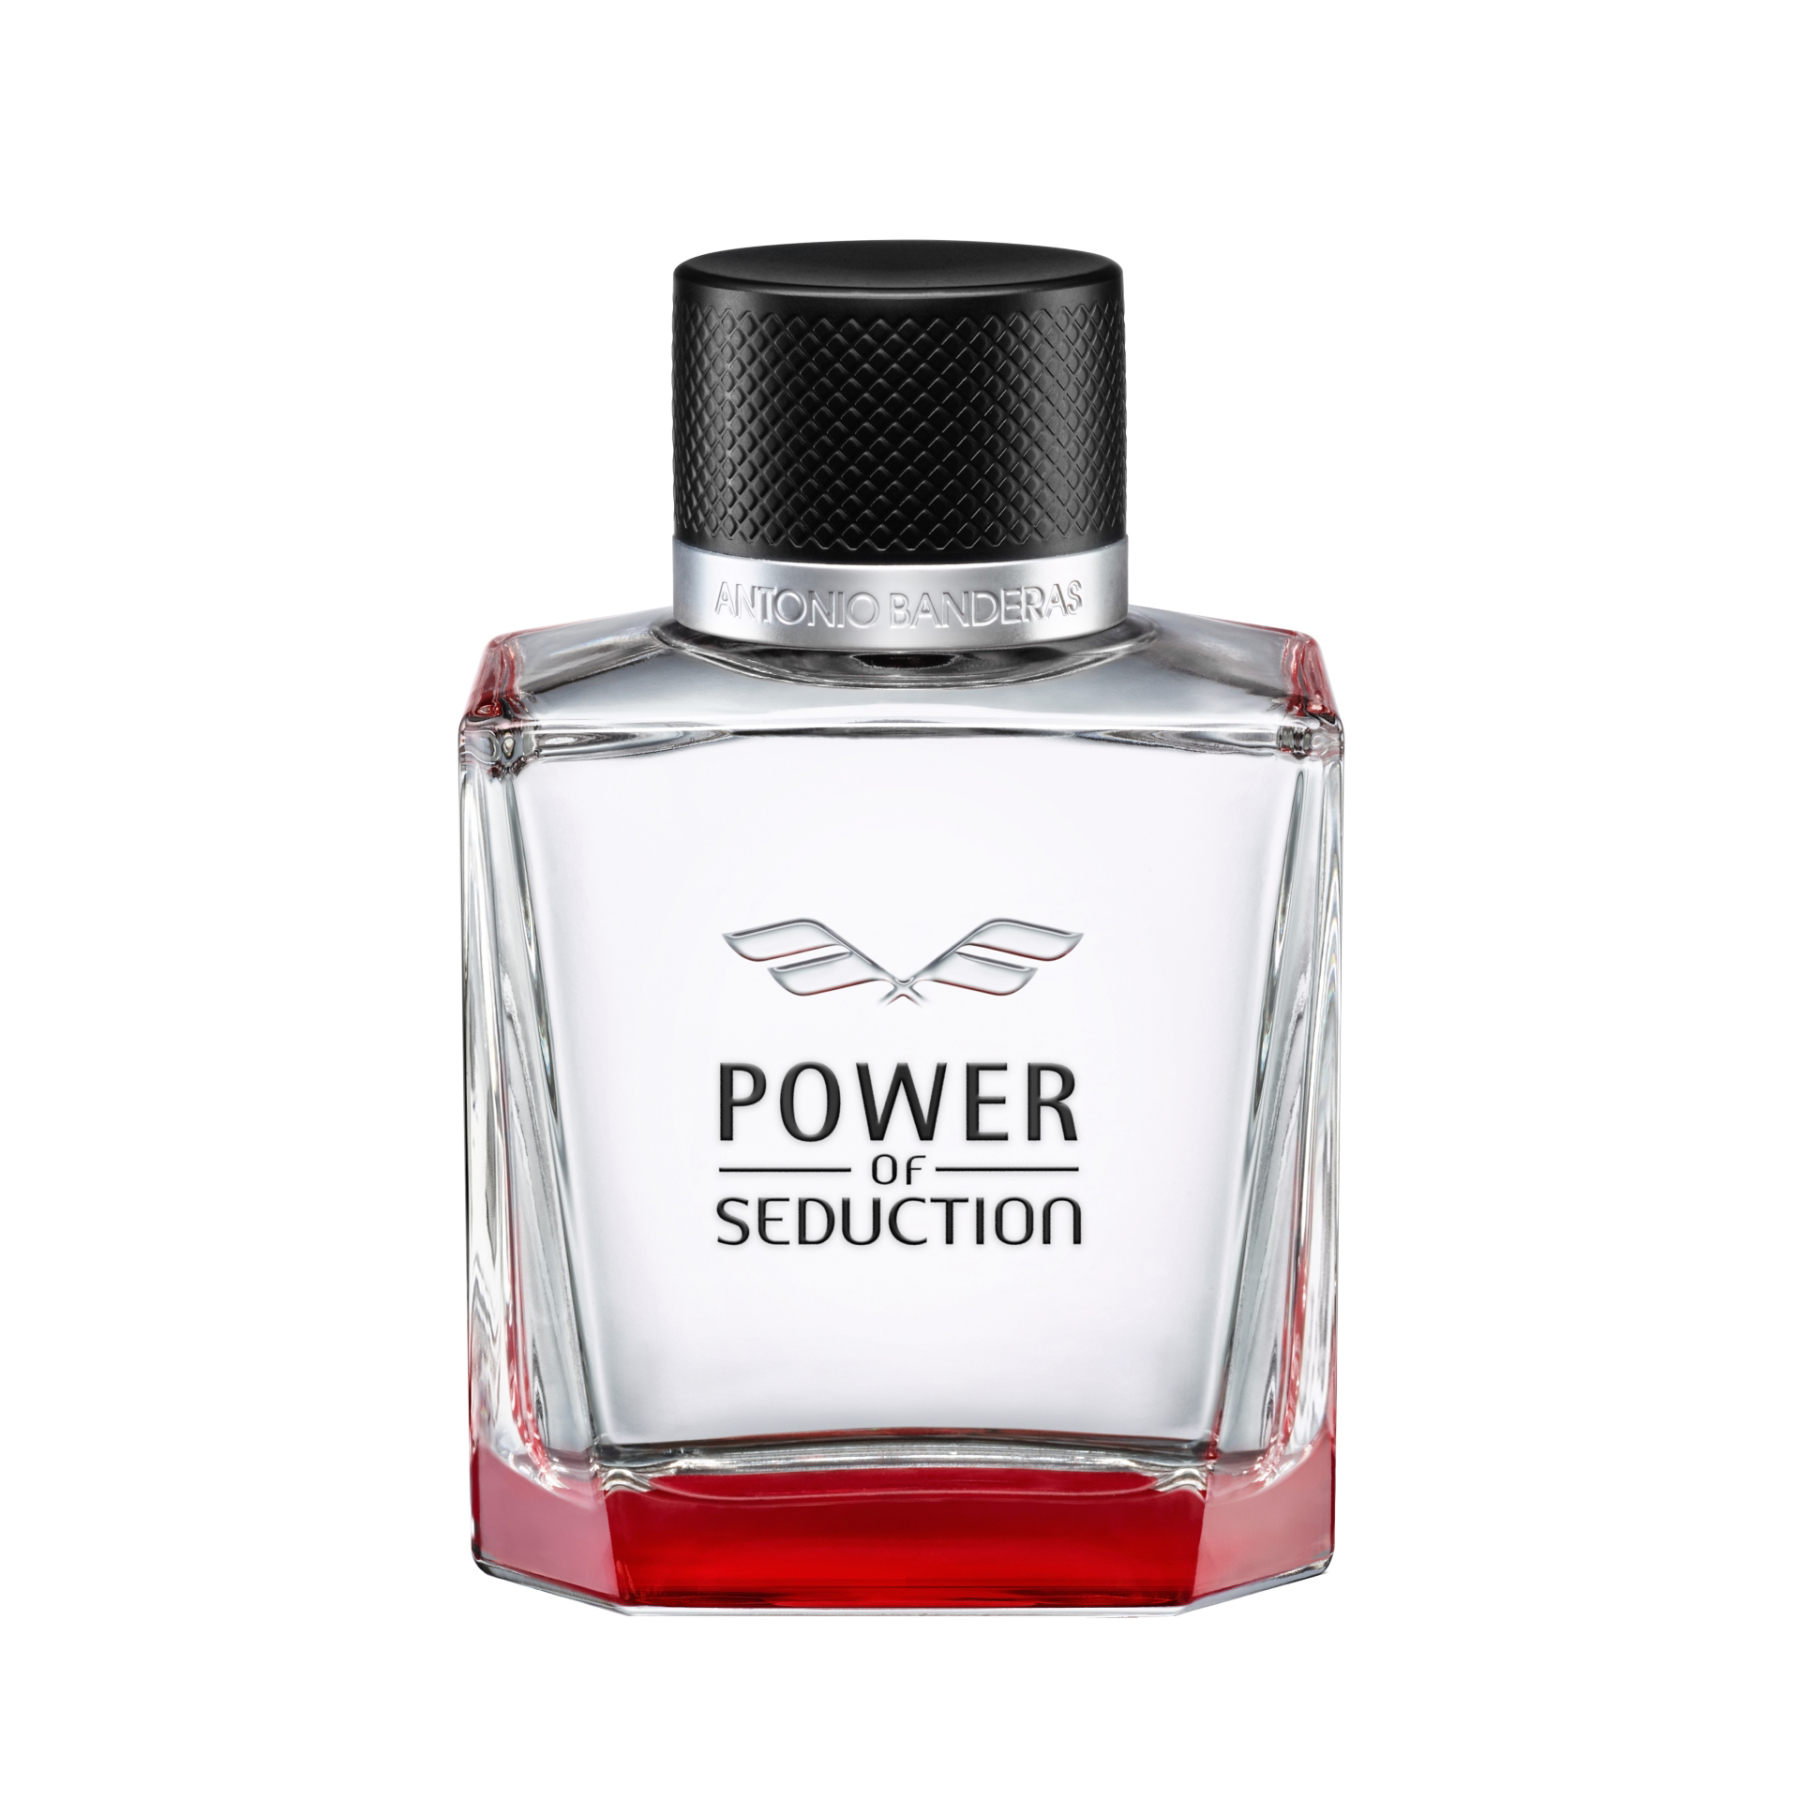 Perfume Antonio Banderas Power Of Seduction Eau De Toilette Perfume 100 Ml